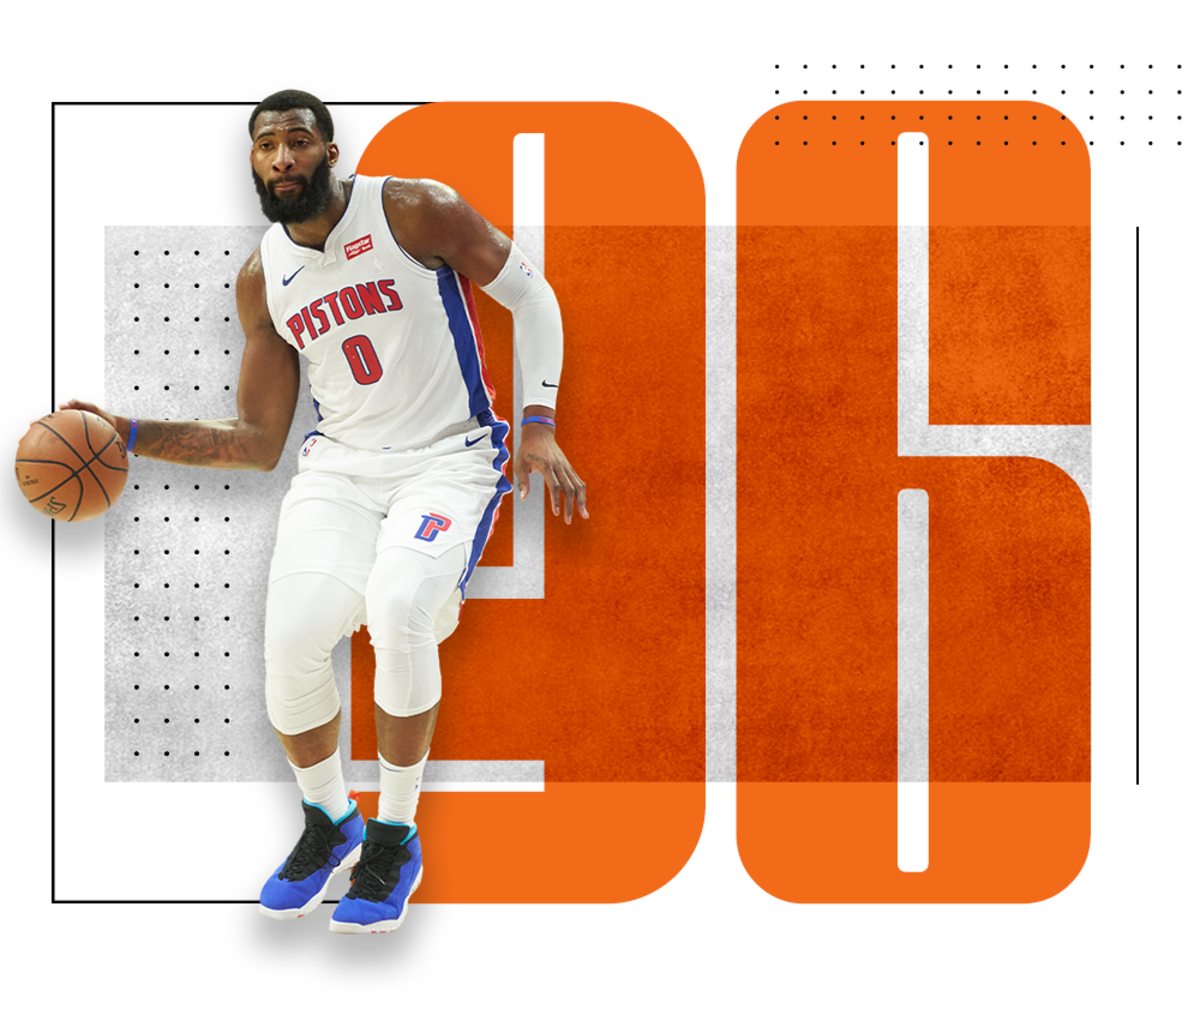 top-100-nba-players-2020-Andre-Drummond.png